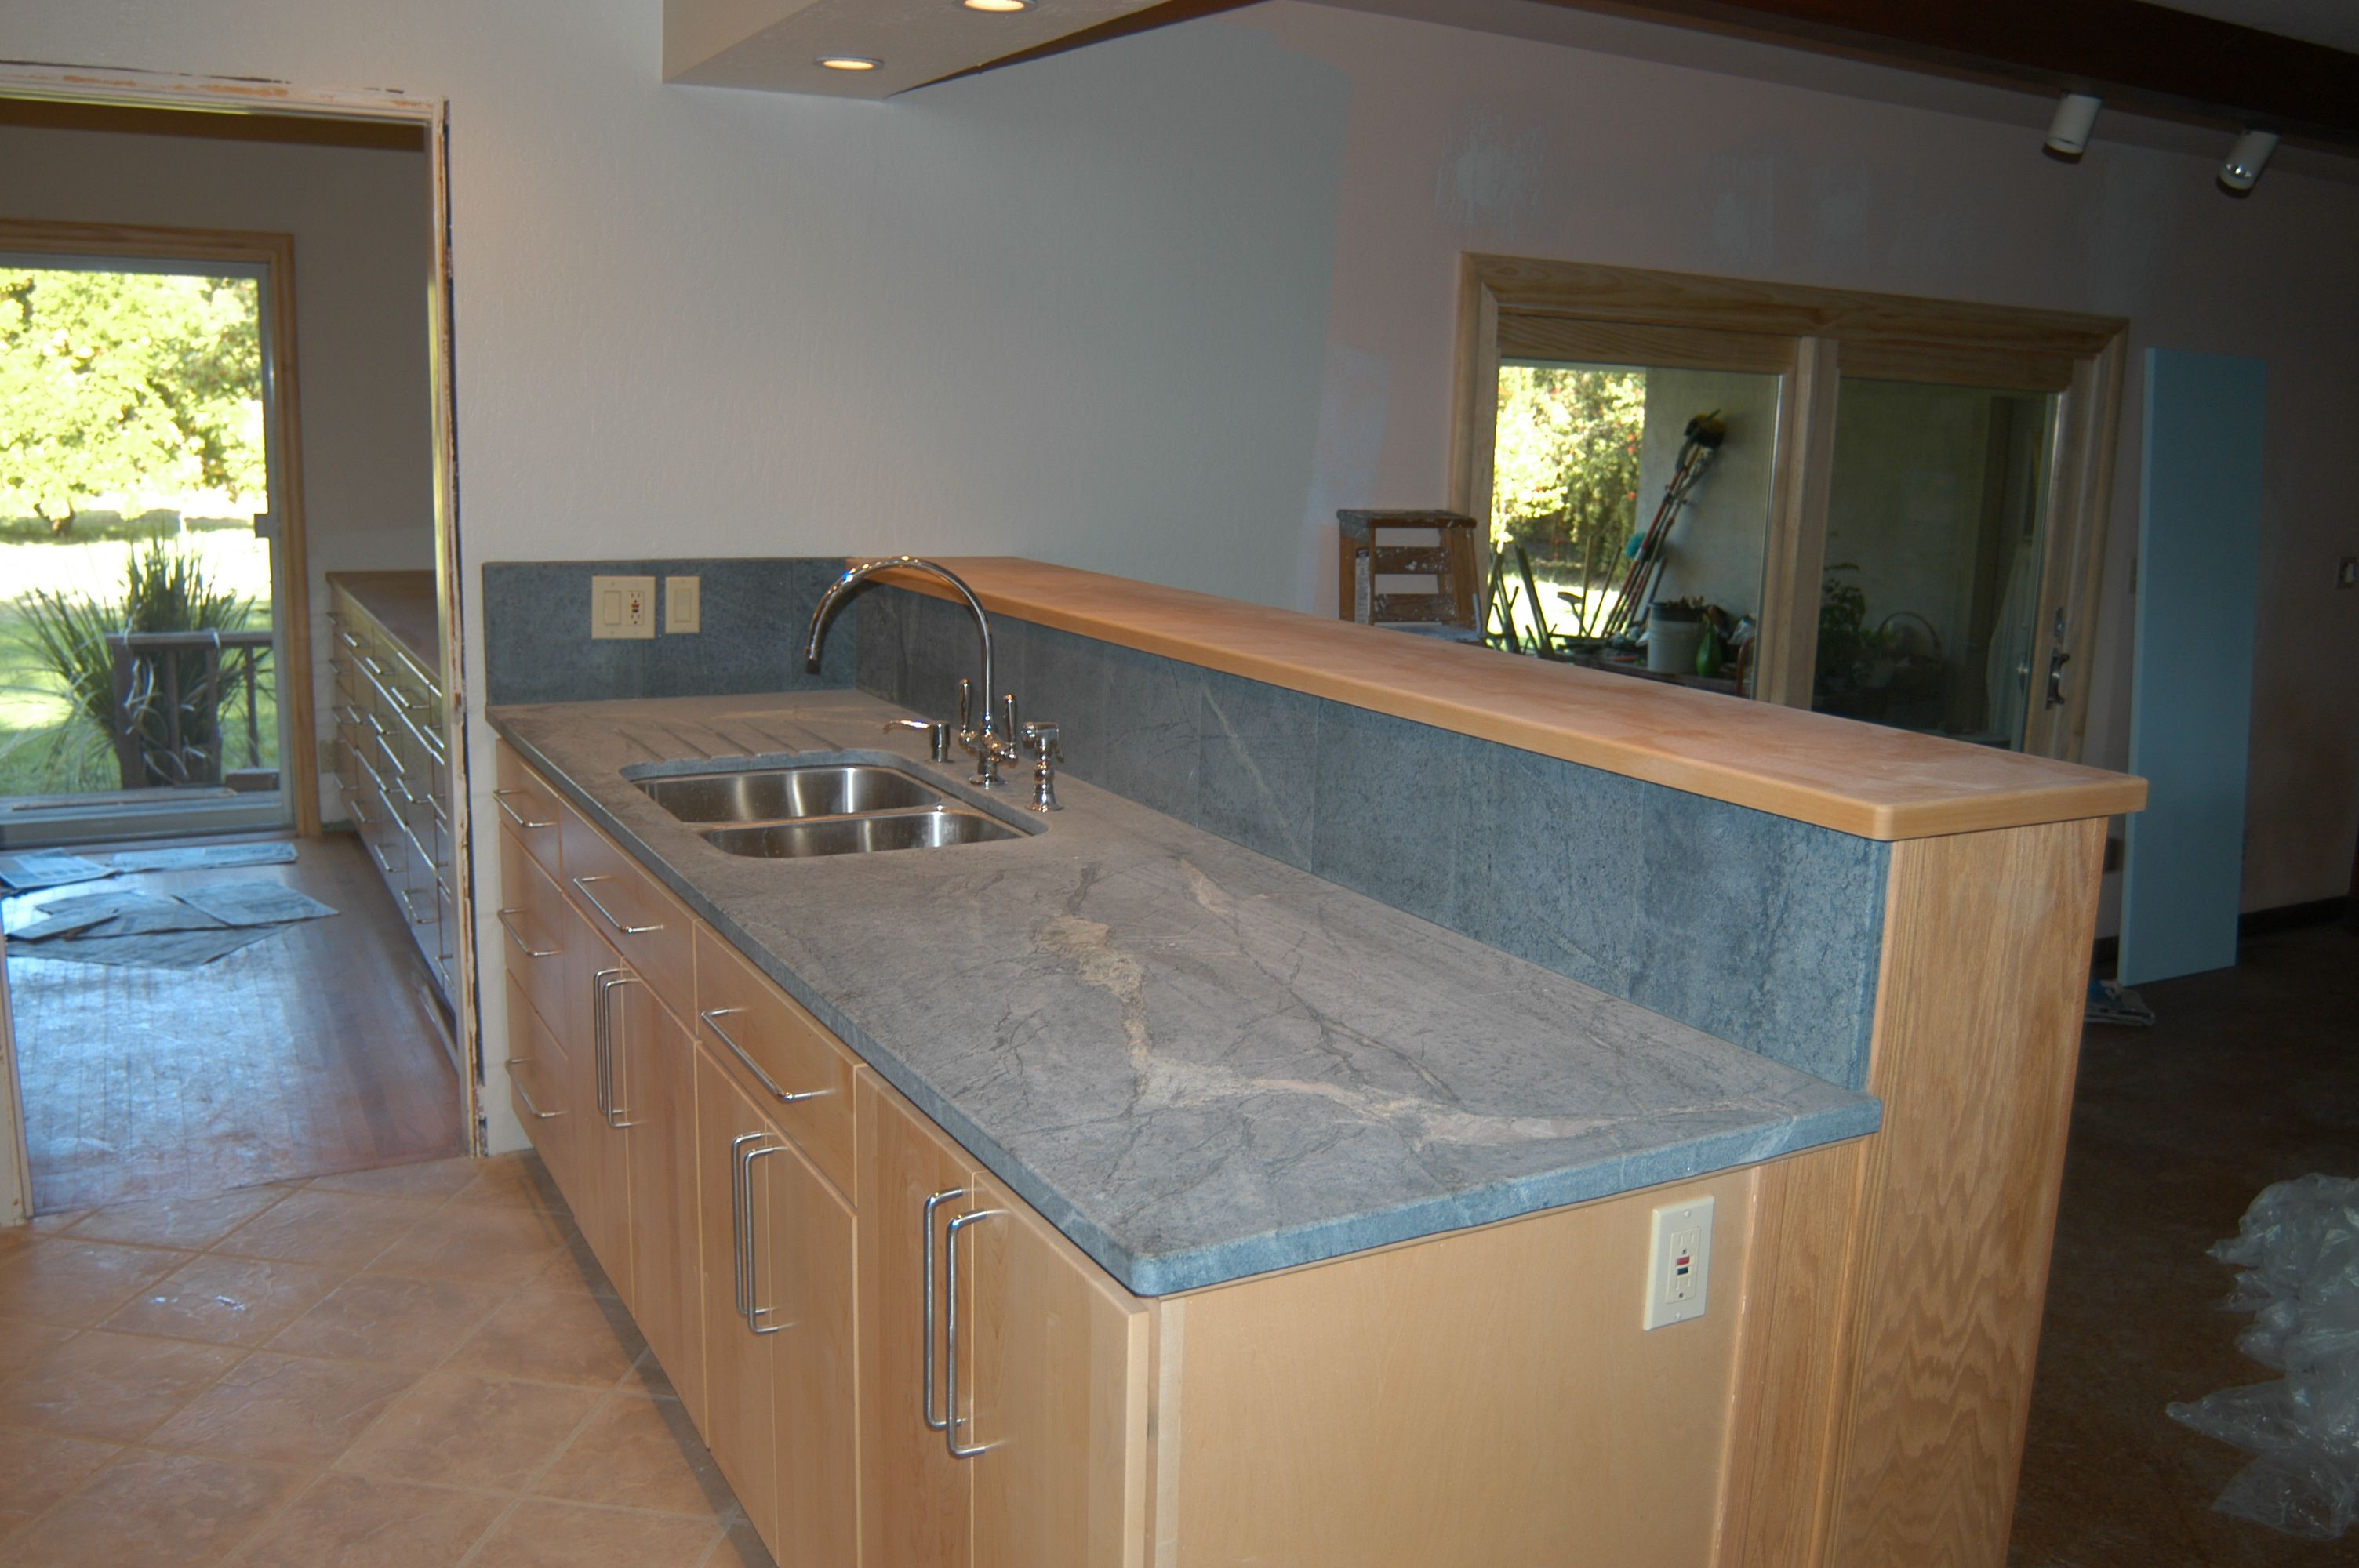 corian solid surface countertops acrylic countertops what is corian corian kitchen sinks solid. Black Bedroom Furniture Sets. Home Design Ideas